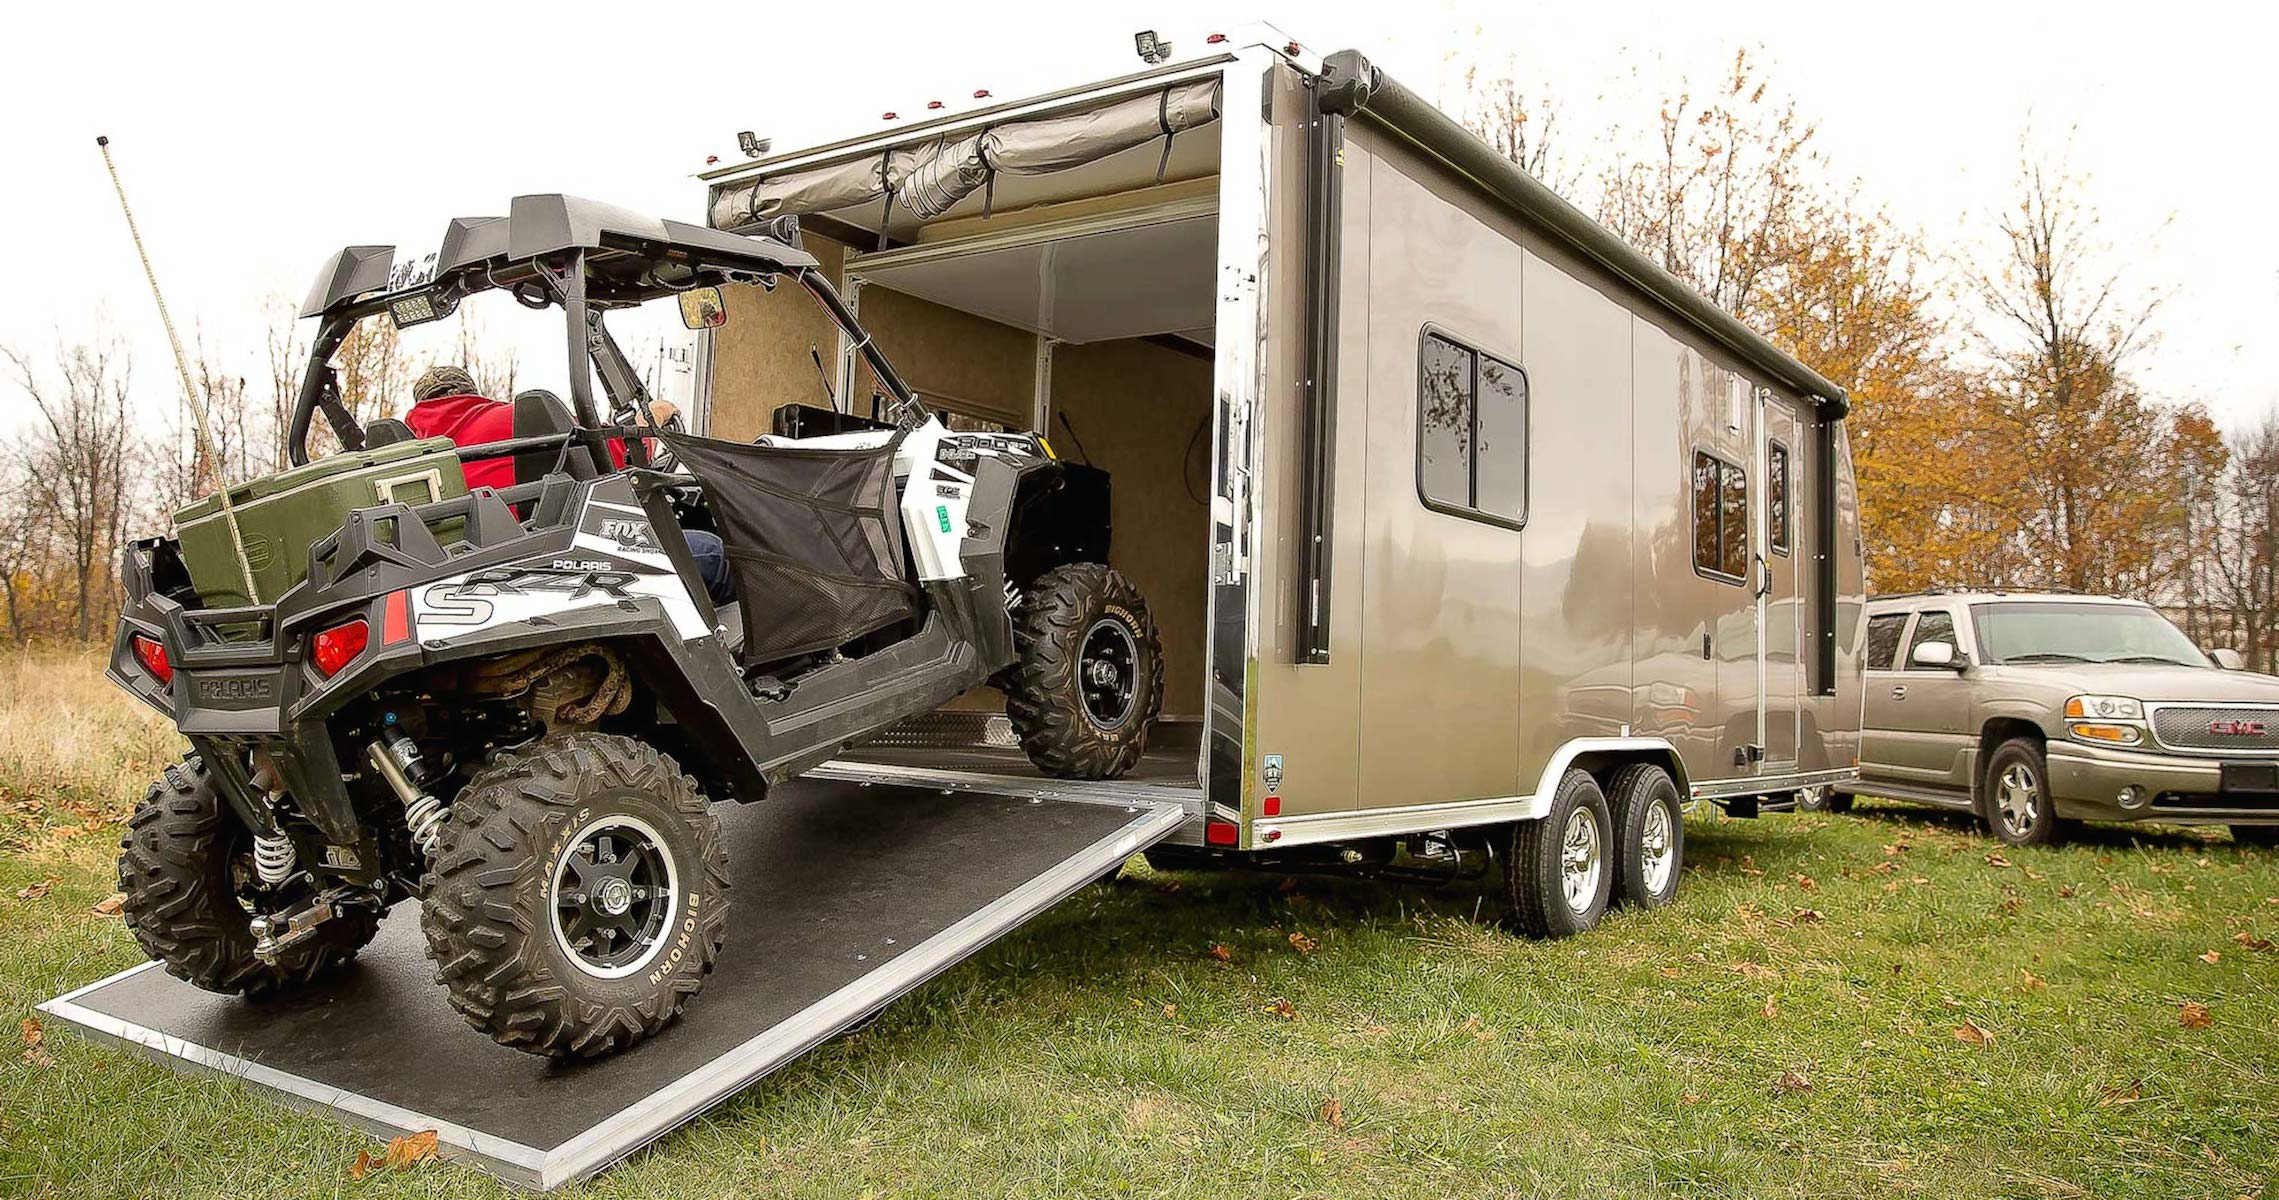 Rvs For Autumn, Part 4: Sport Utility Rvs Haul Motorized Toys For Active  Family